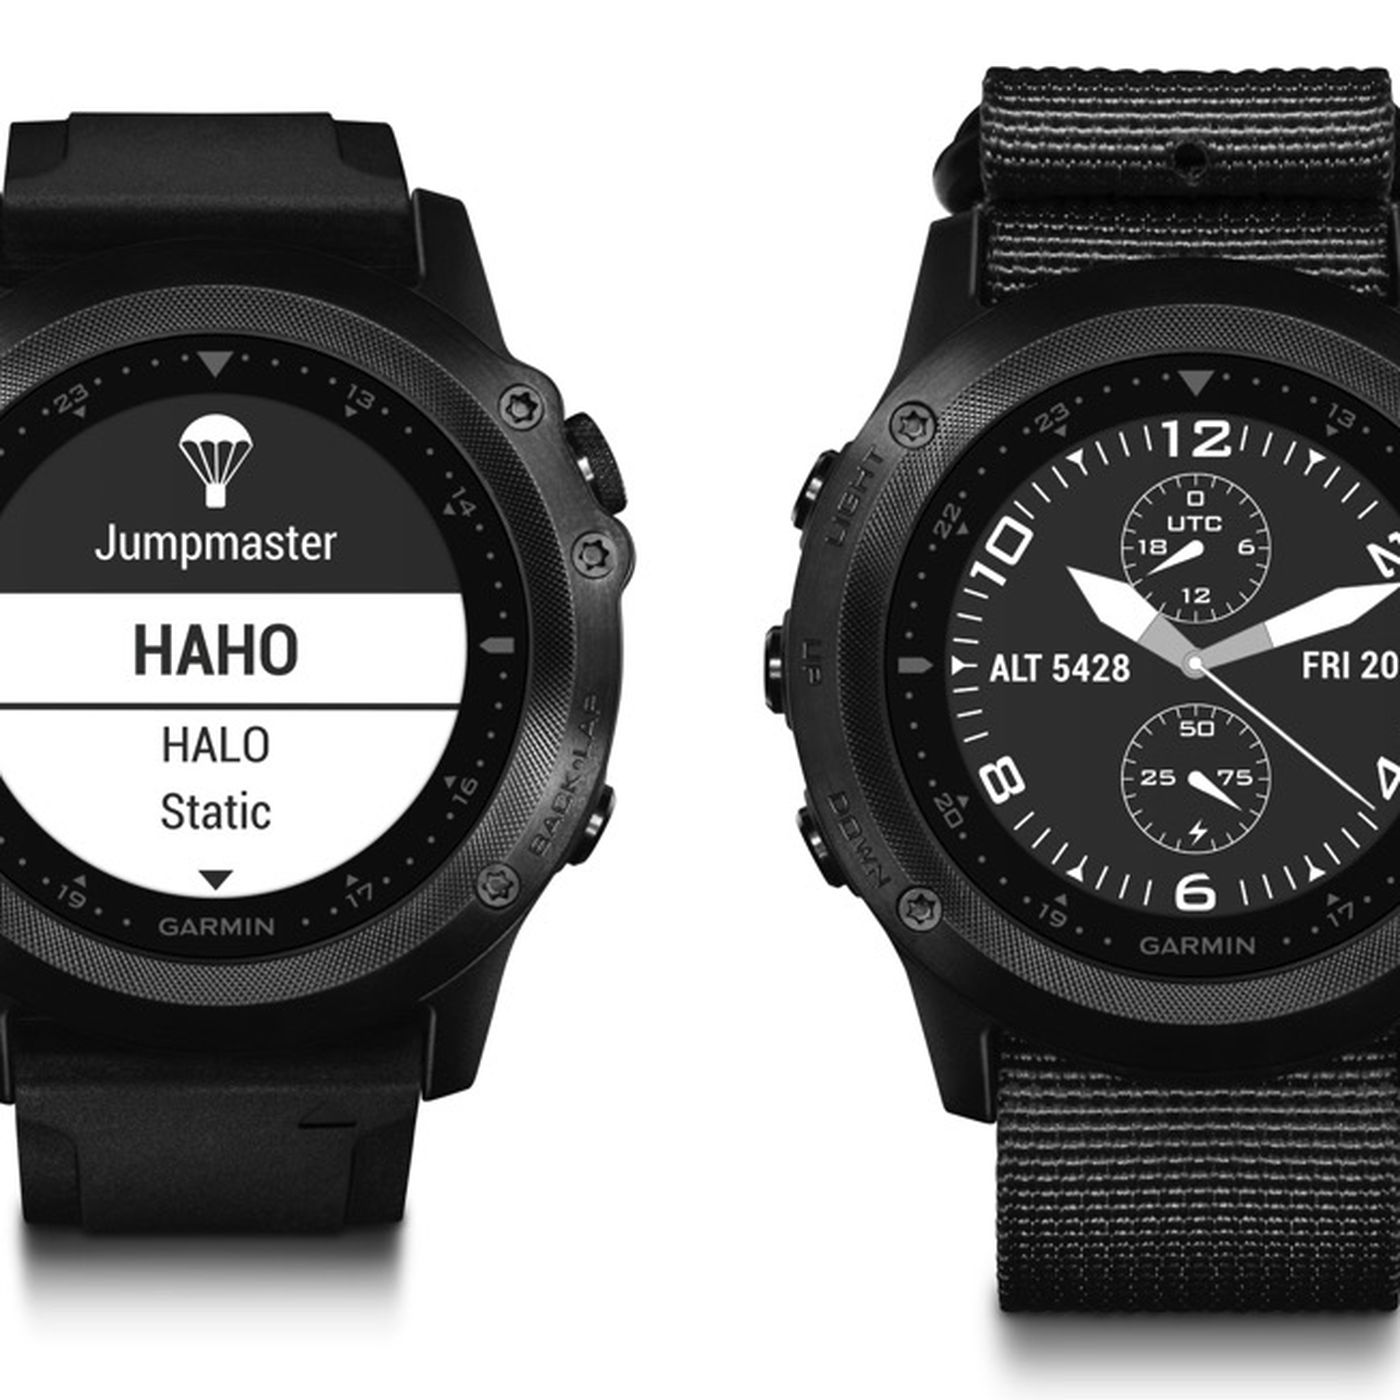 Garmins New Tactix Bravo Was Made For Your Everyday Seal Team Six Suunto Traverse Black Outdoor Watches With Gps Glonass Mission The Verge